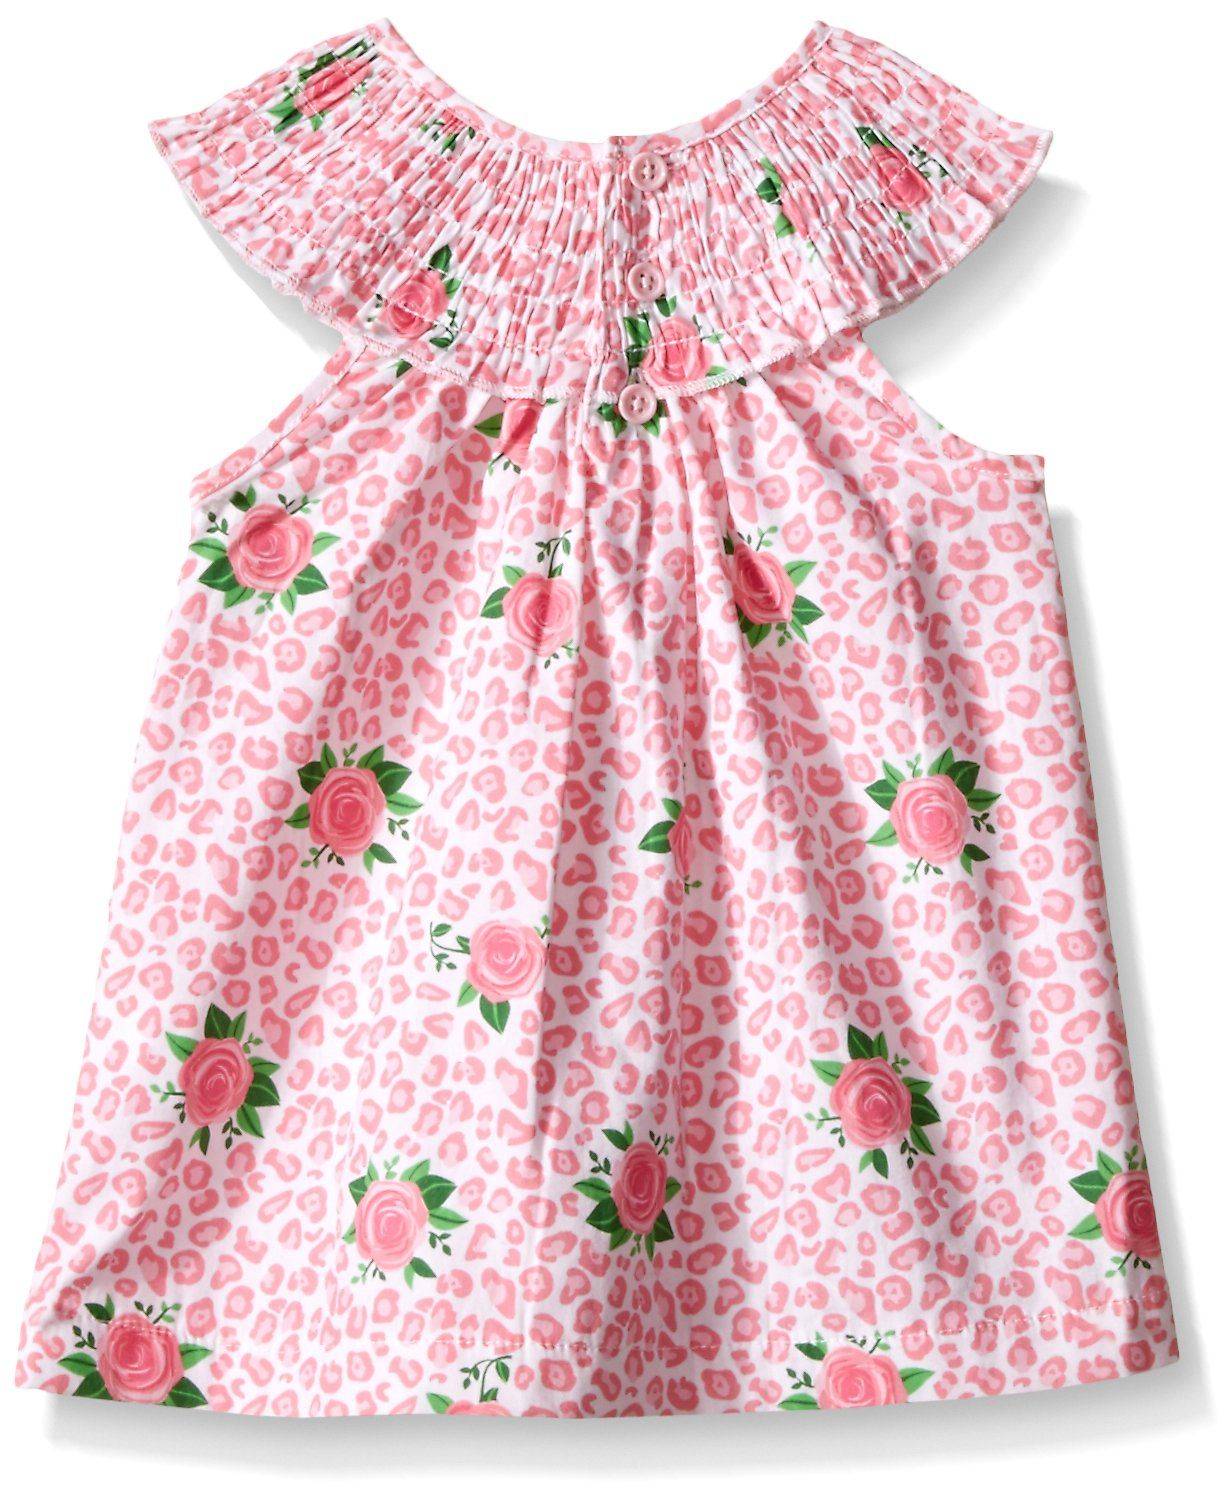 Baby Girls Dresses 6-9 Months Clothes, Shoes & Accessories